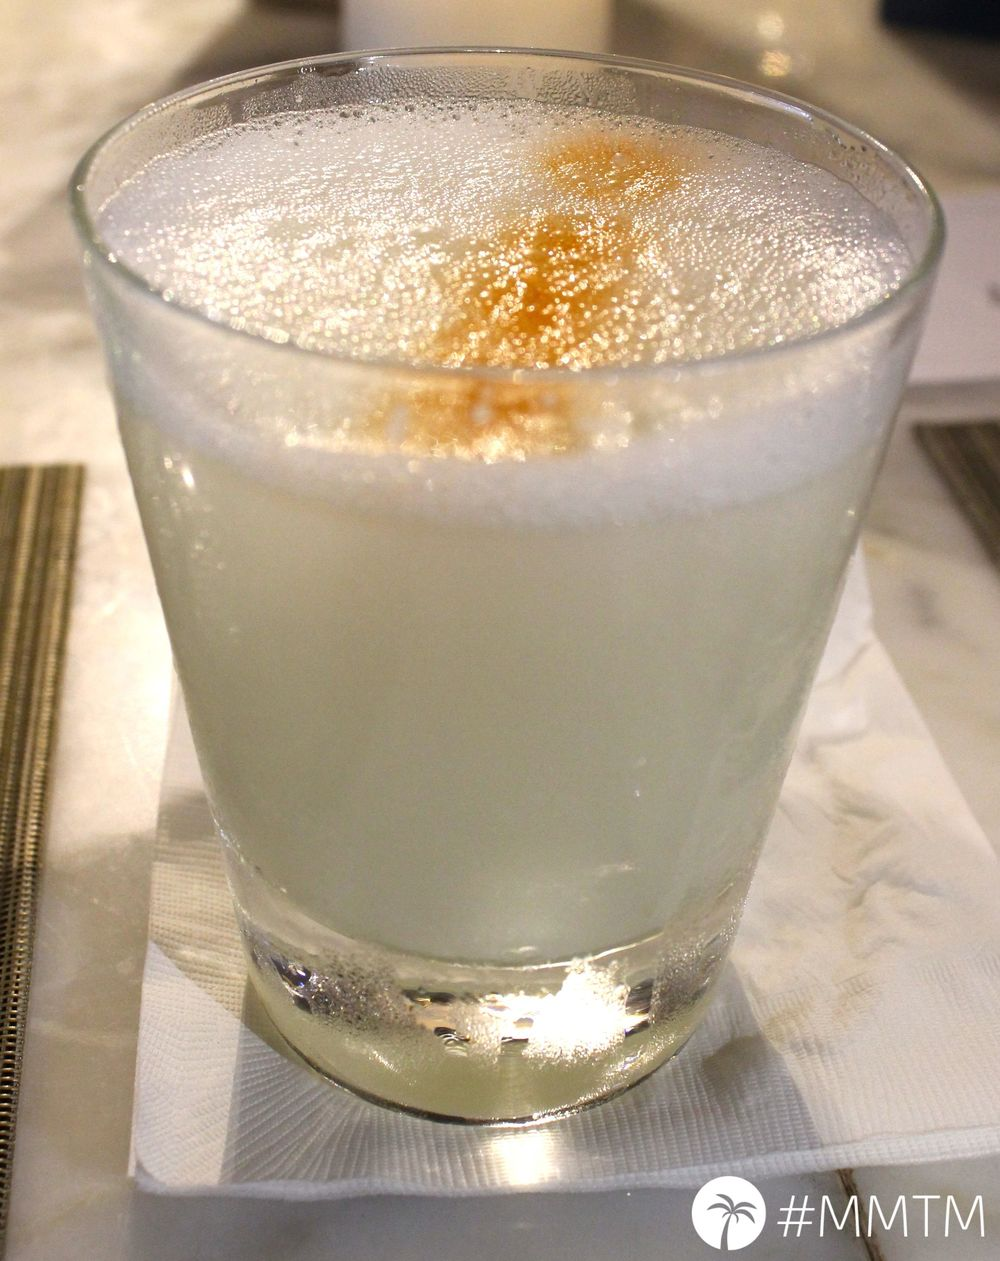 La Mar Miami Pisco Sour